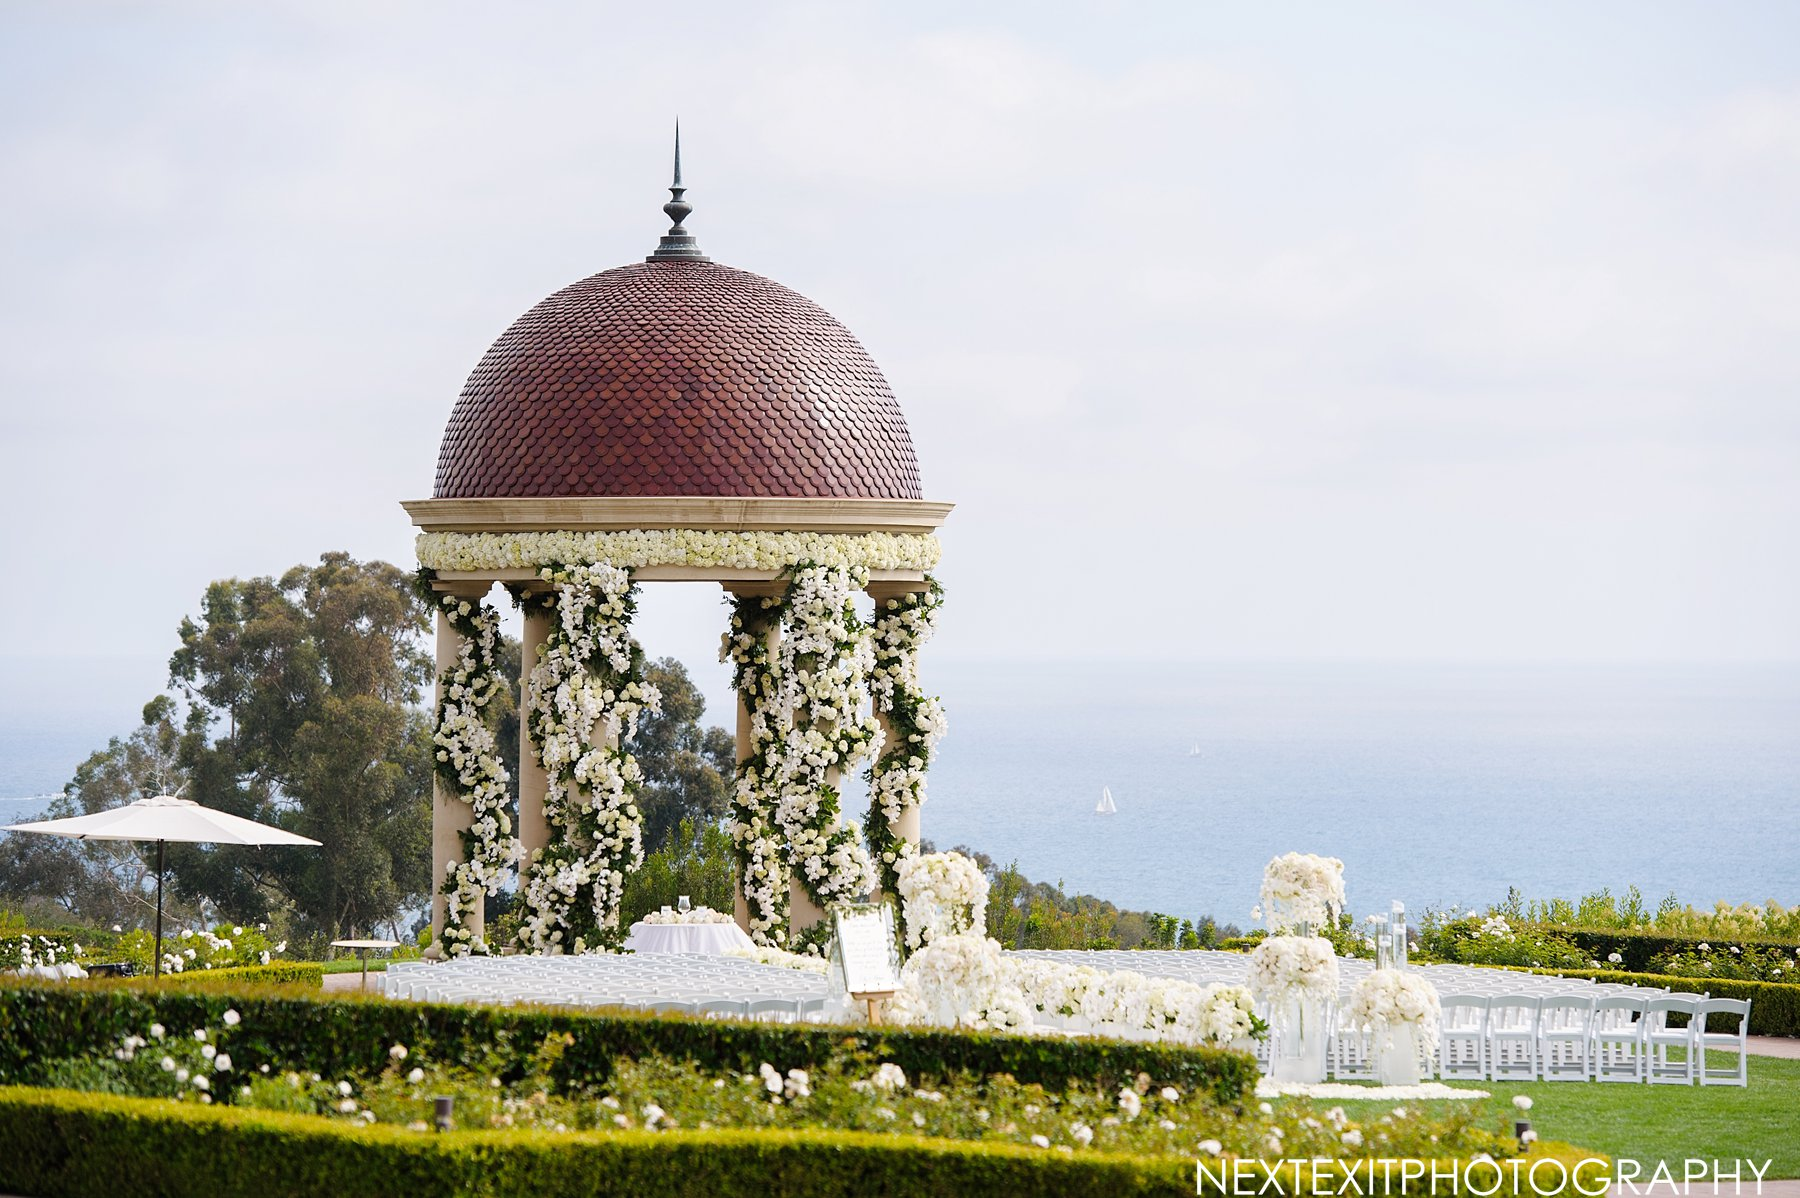 bircher_bloggers_pelican_hill_Next_Exit_Photography_30.jpg